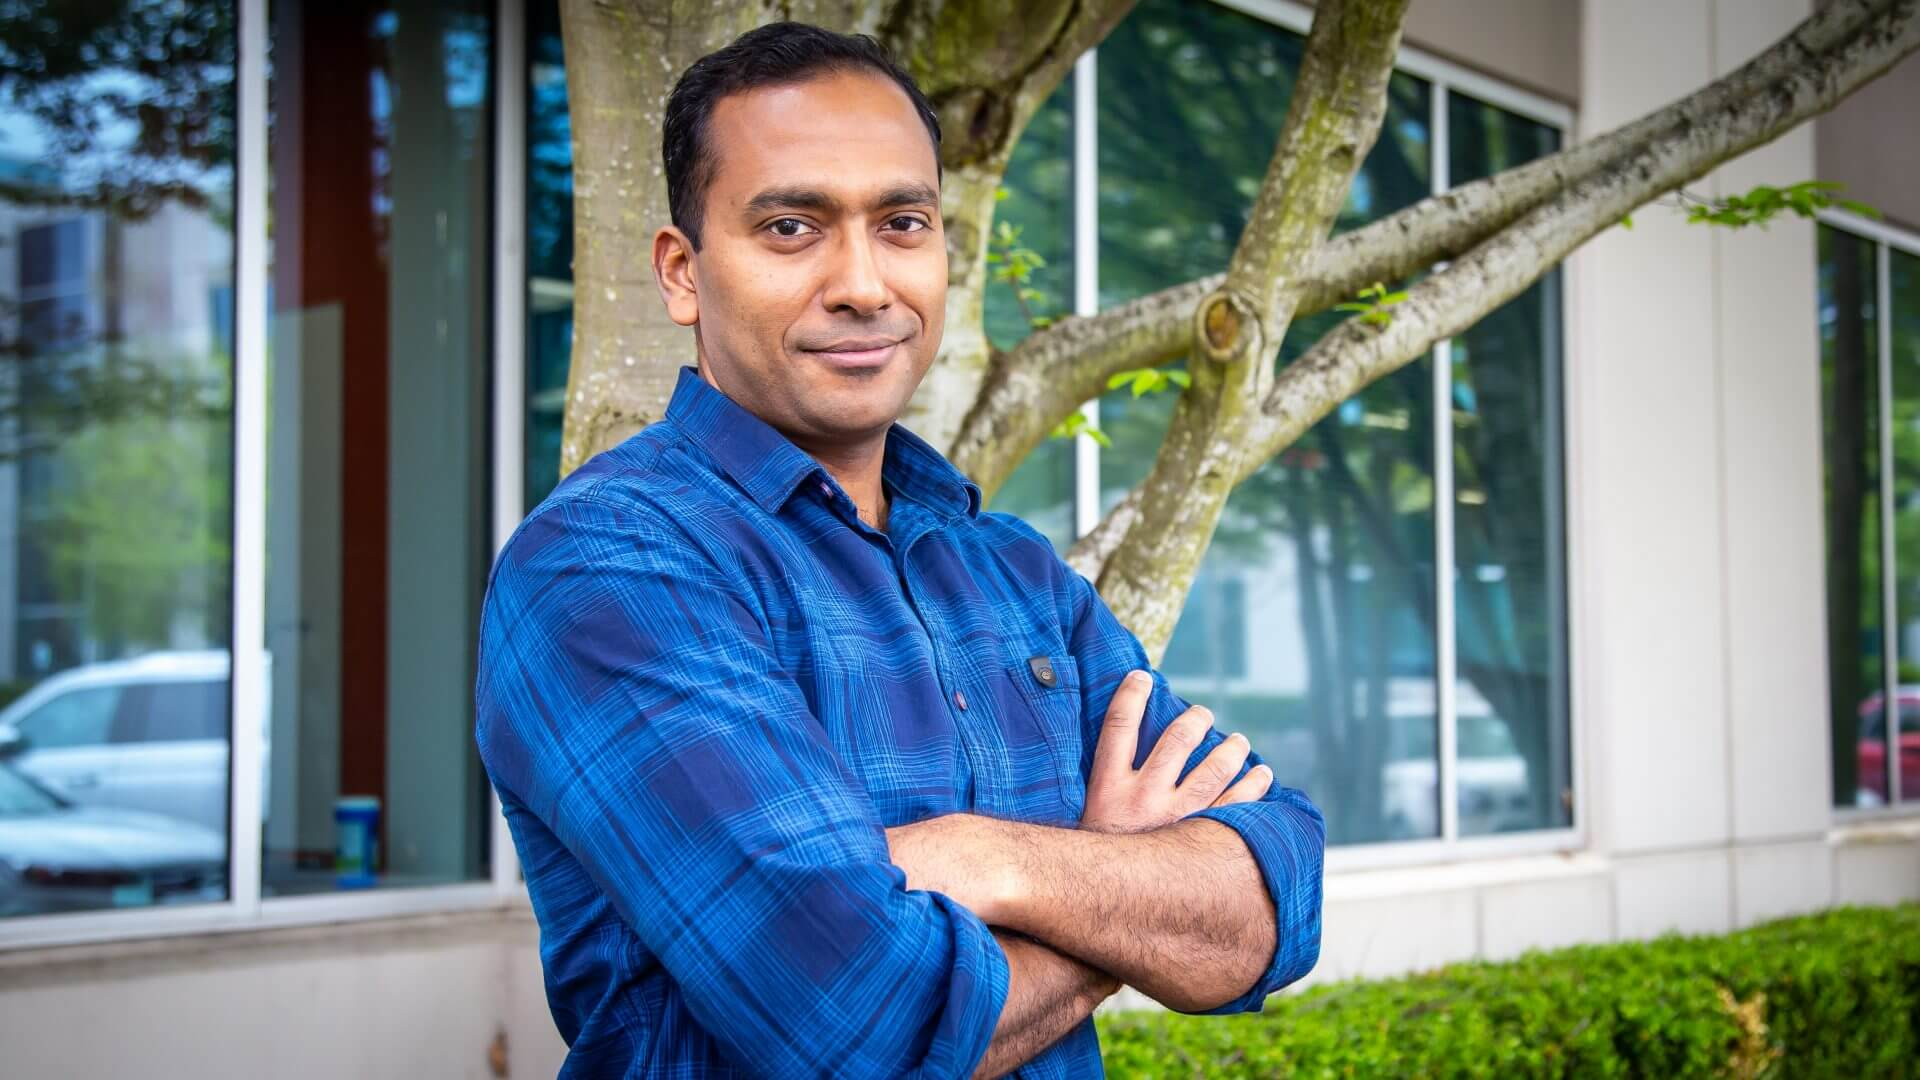 Garg stands in front of a large tree and building with his arms crossed, and he smiles at the camera.